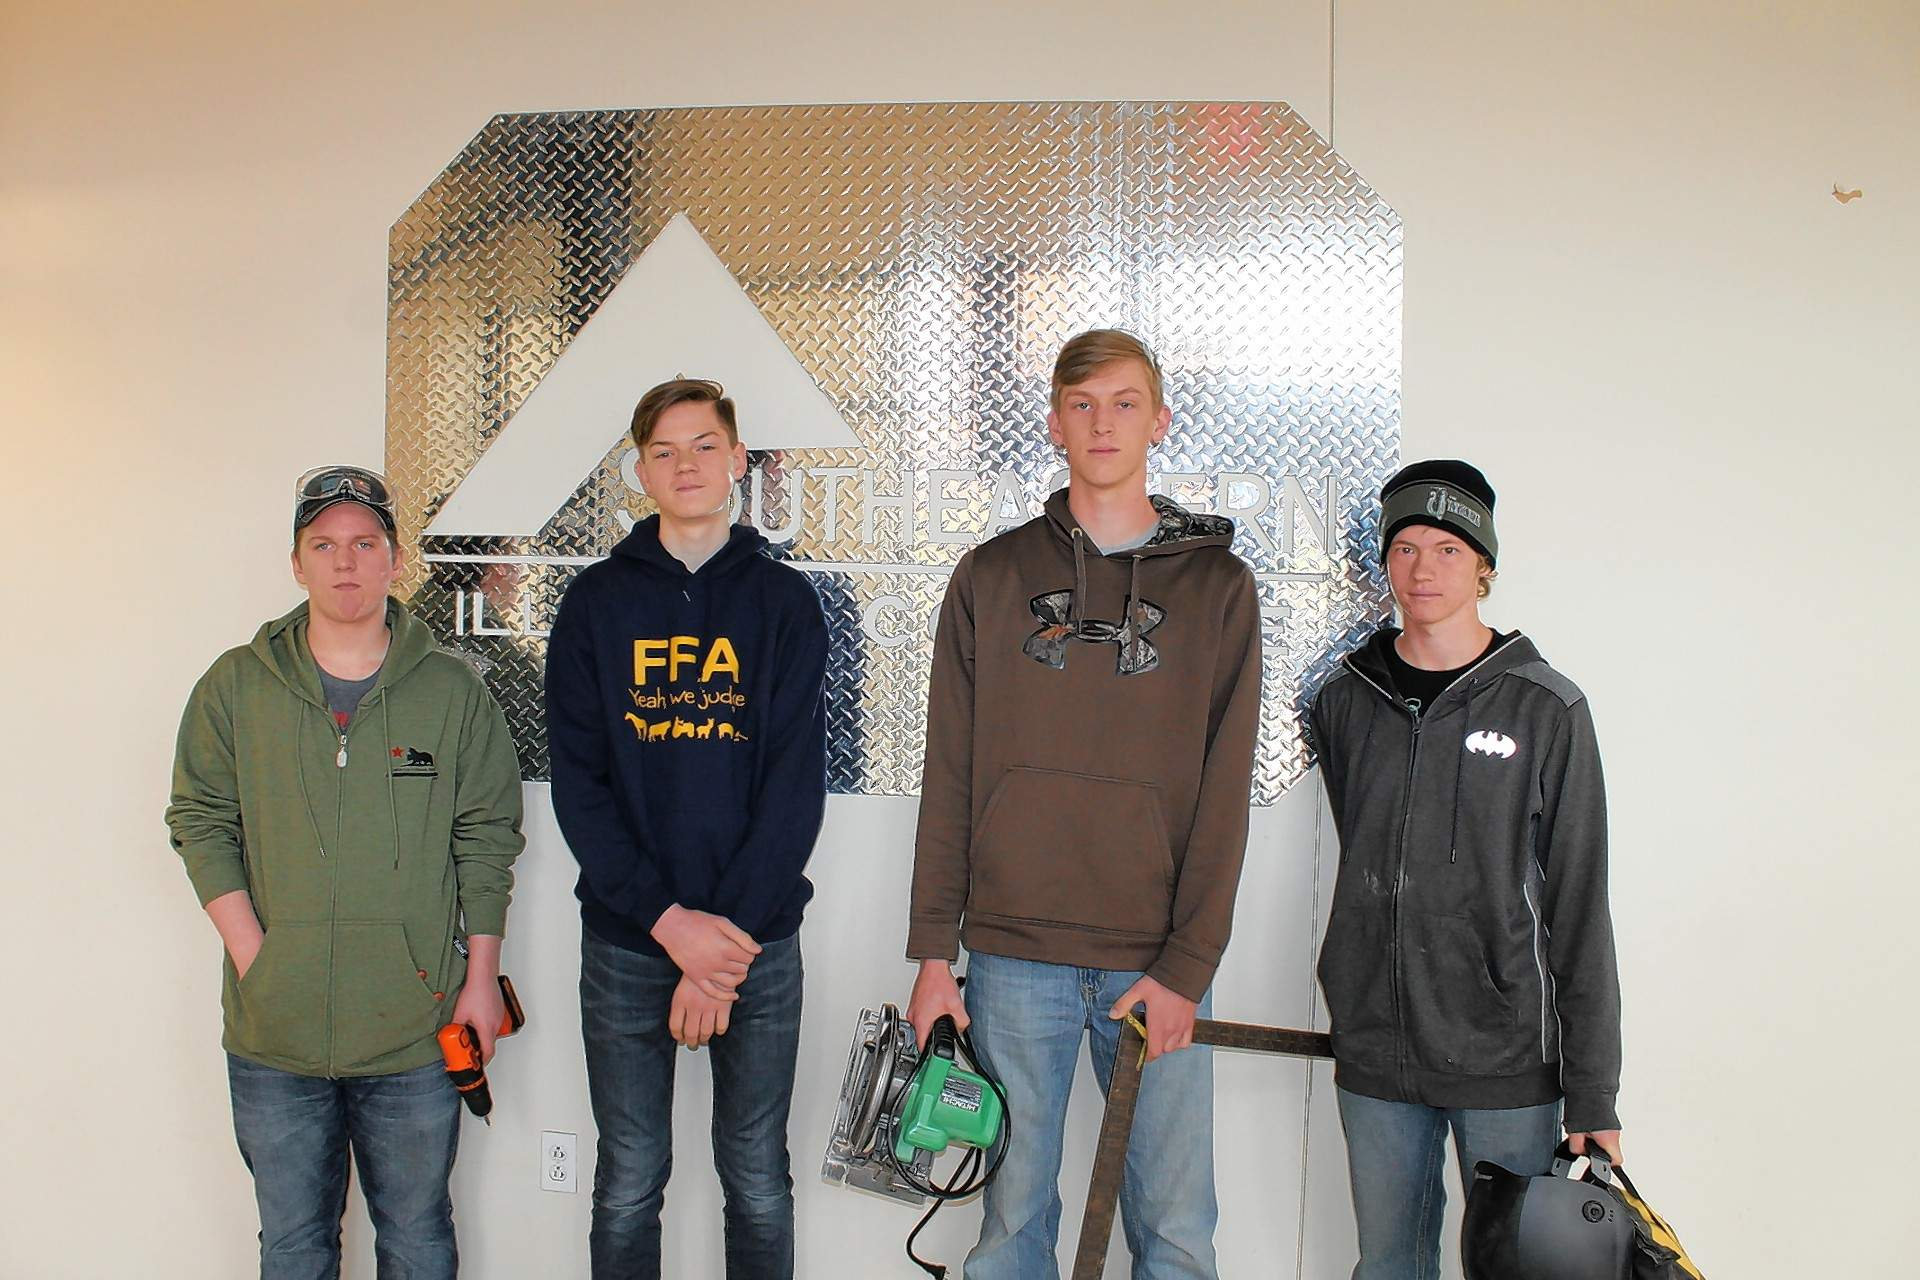 Joppa High School's FFA Chapter participated at the 2018 FFA Section 25 Ag Mechanics Competition at Southeastern Illinois College. Pictured are (not in order): Kaleb Cox, Patrick Harville, Matt McGinness and James VanMeter.